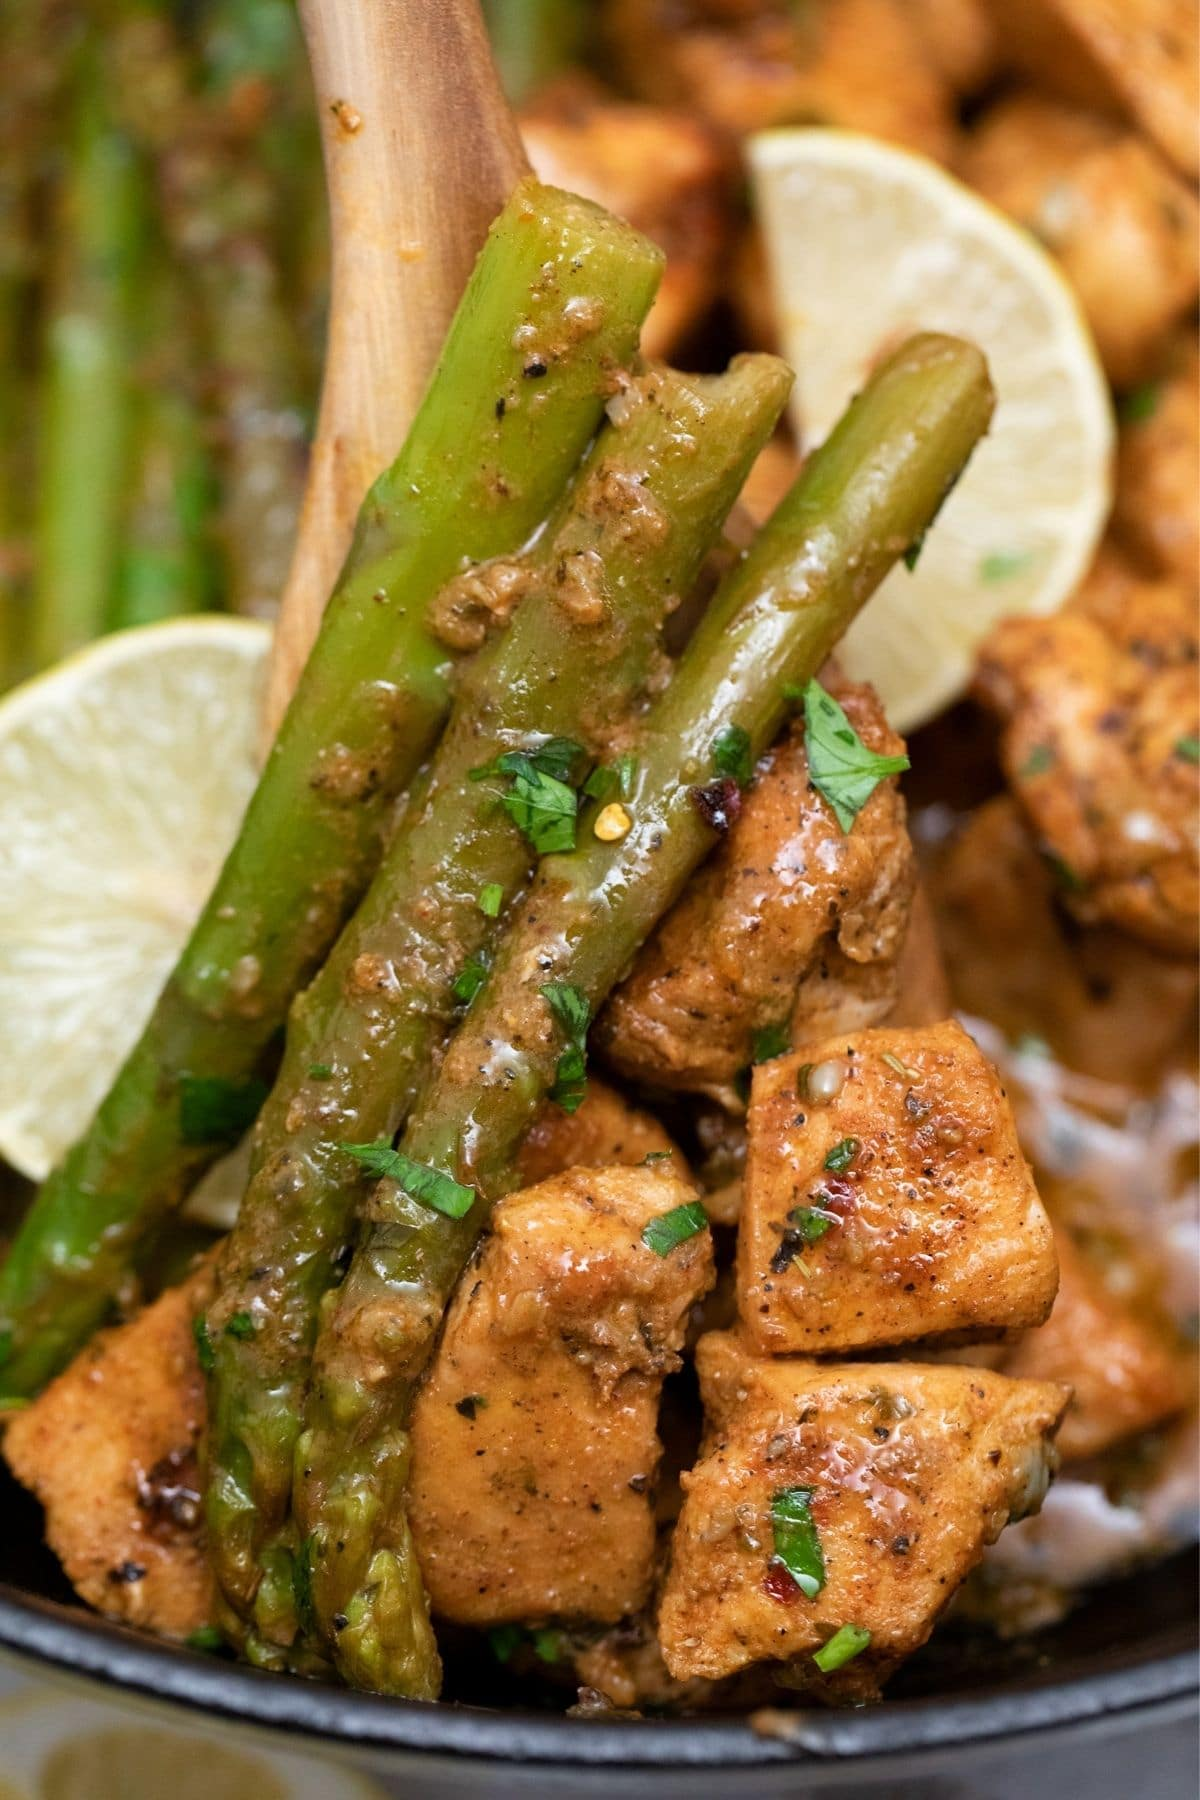 Wooden spoon holding asparagus and chicken